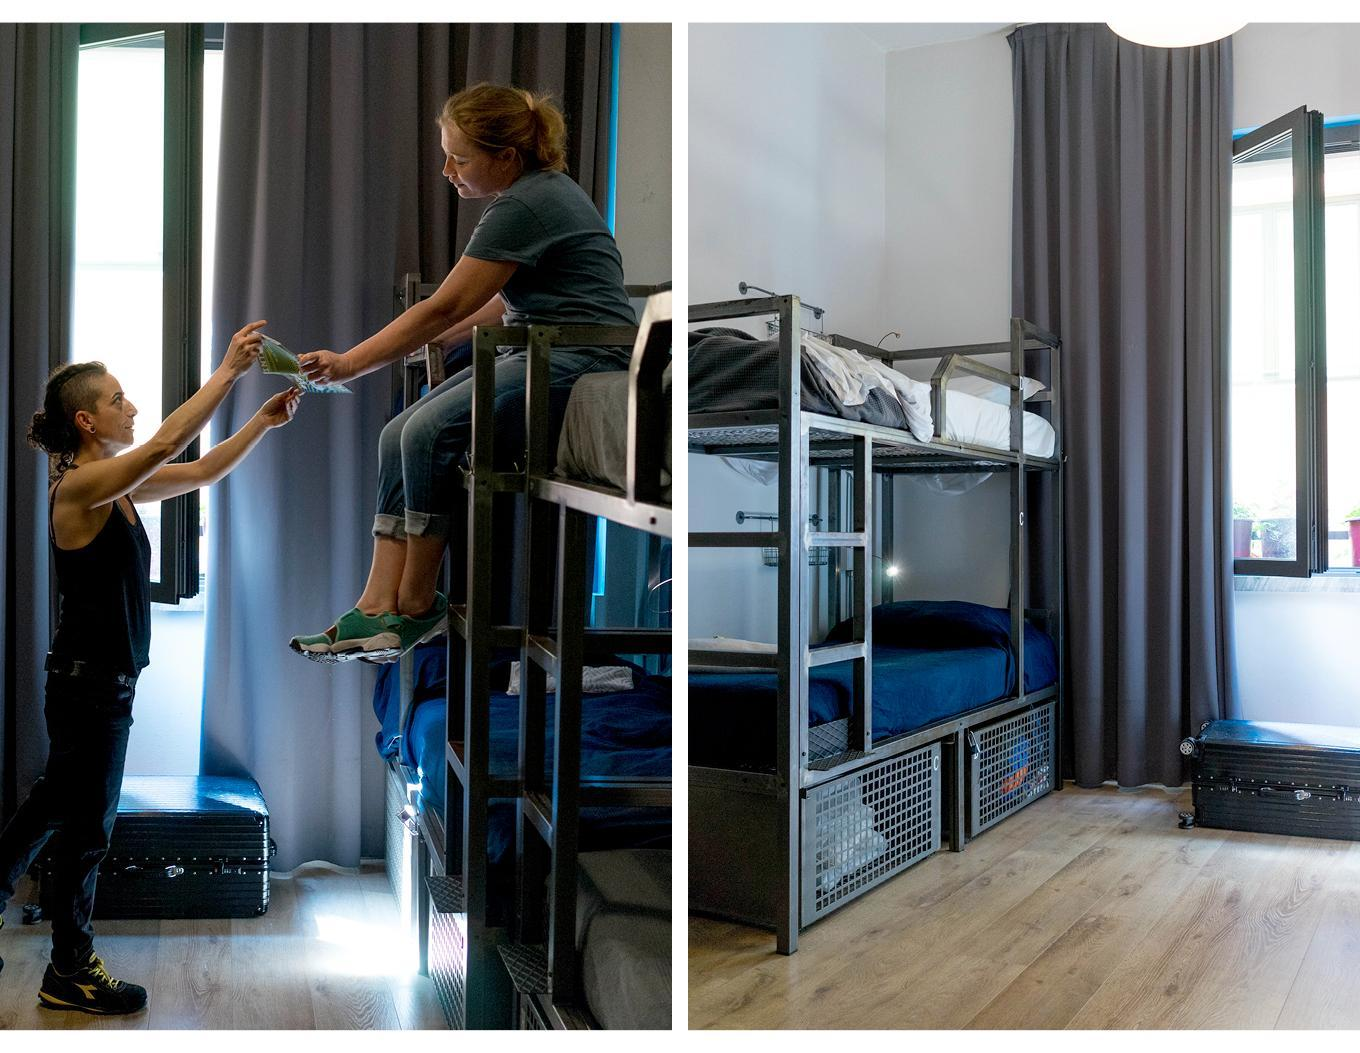 Seng i sovesal (begge kjønn) med 8 senger og eget bad  (Bed in 8-Bed Mixed Dormitory Room with Private Bathroom)